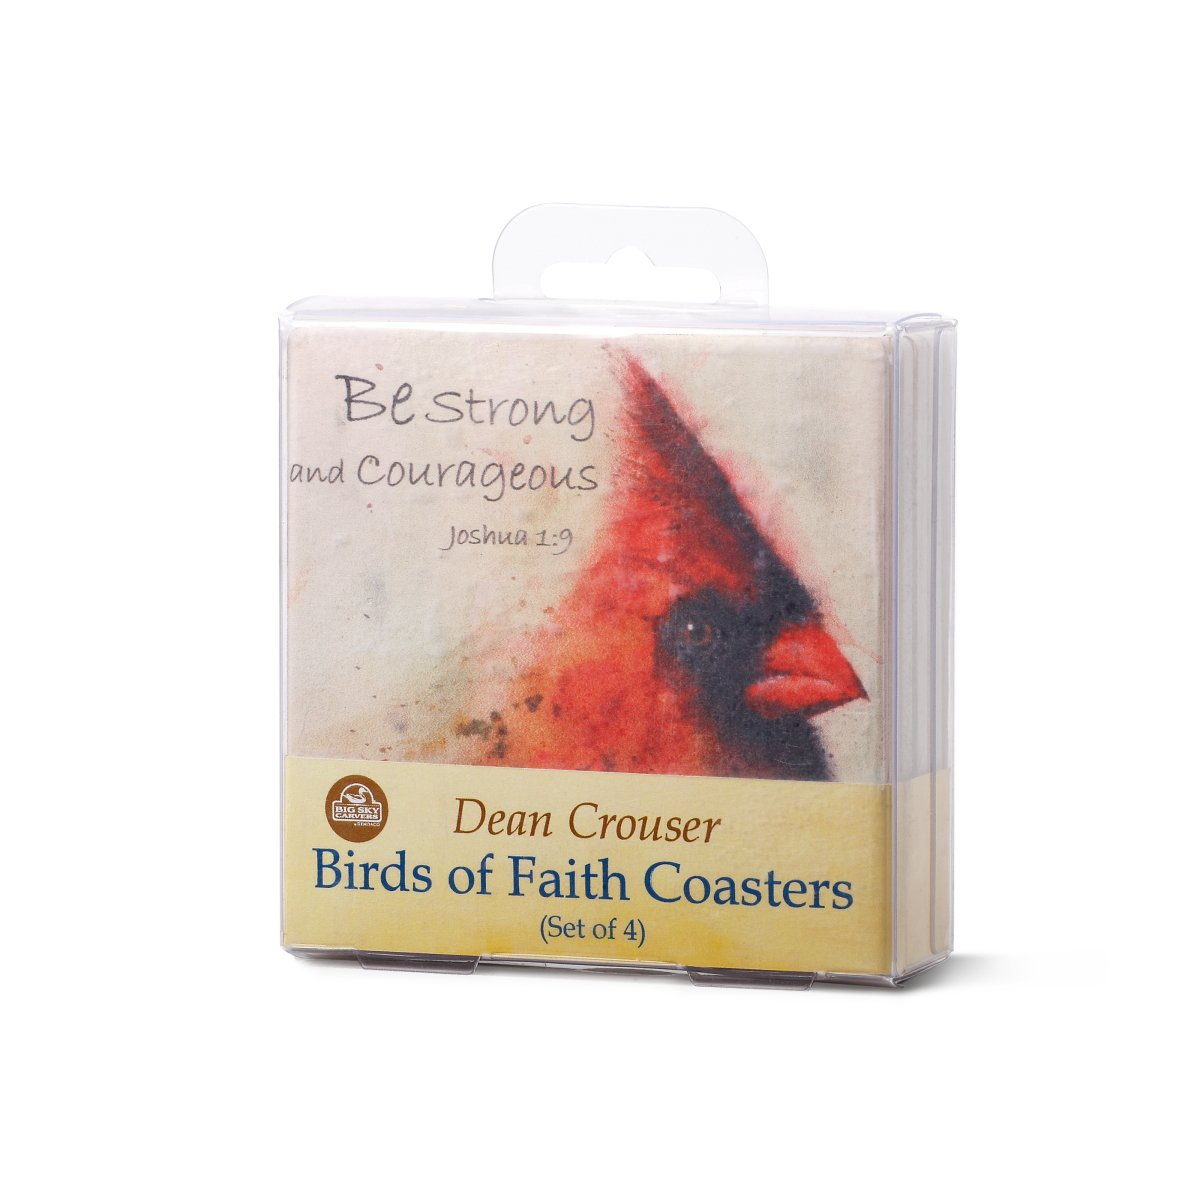 Birds of Faith Watercolor 4 x 4 Absorbent Ceramic and Cork Coasters Set of 4 Demdaco 3005050612